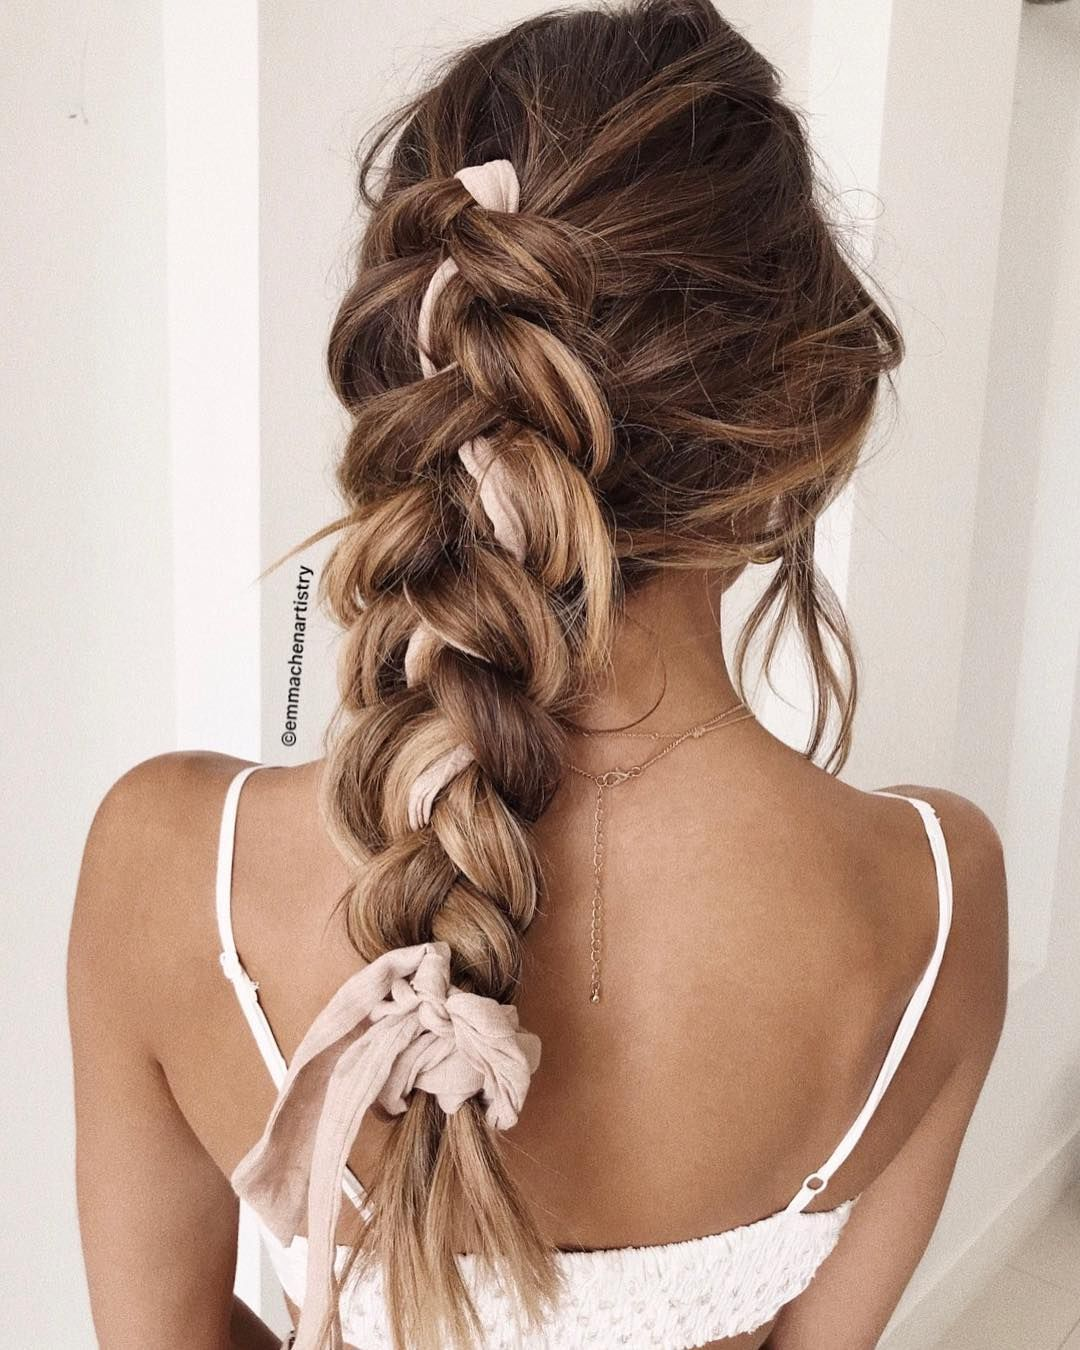 Simple braid hairstyle updo hairstyle inspiration hairstyles